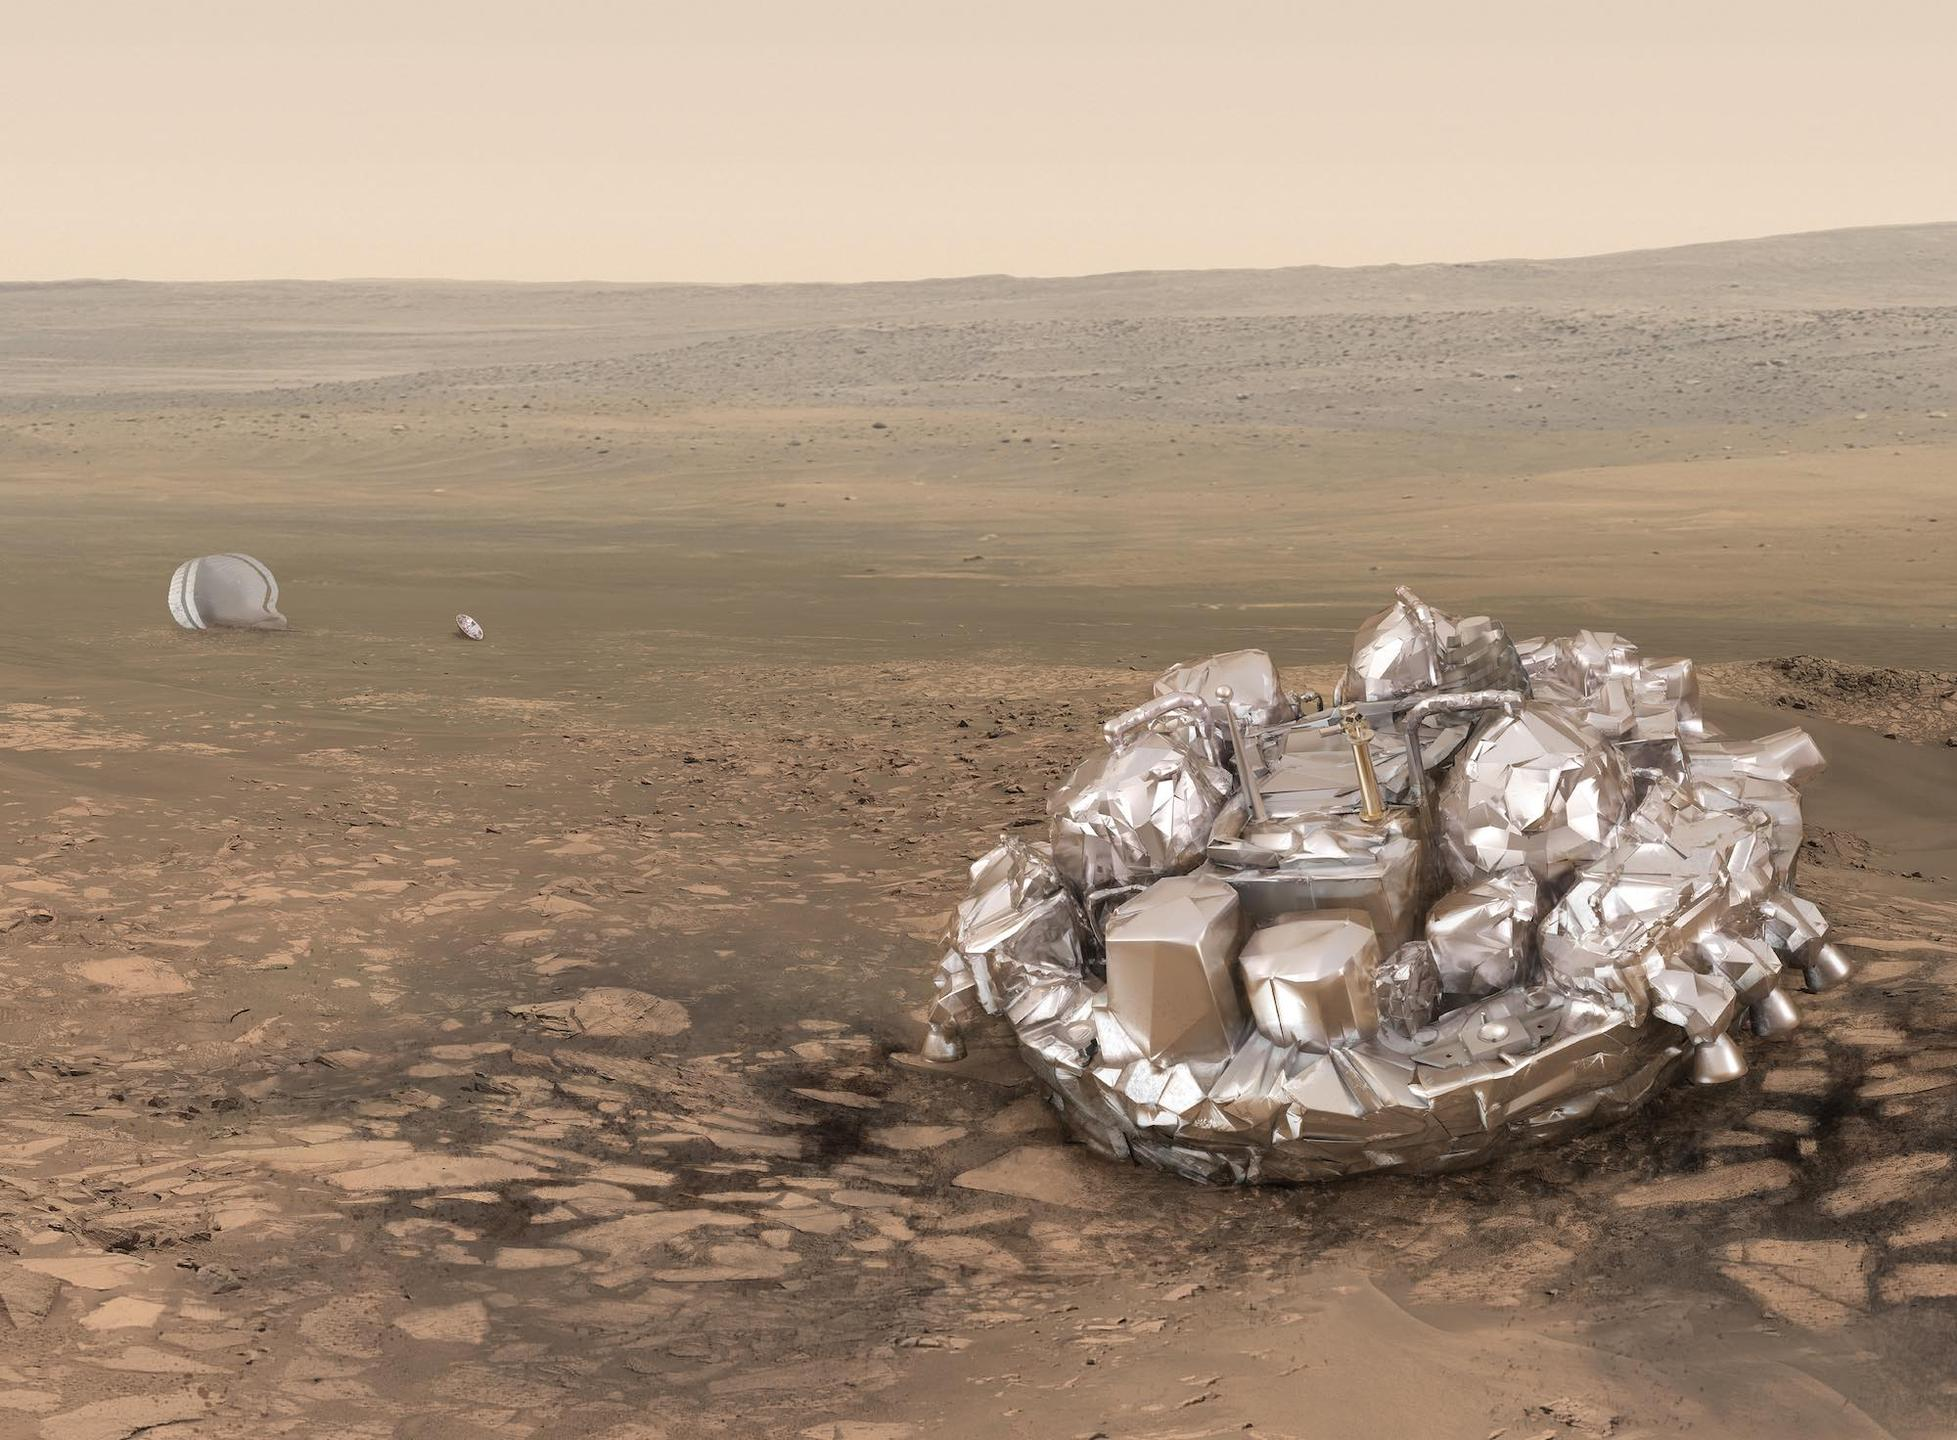 How NASA Found The Lost ExoMars Lander So Quickly